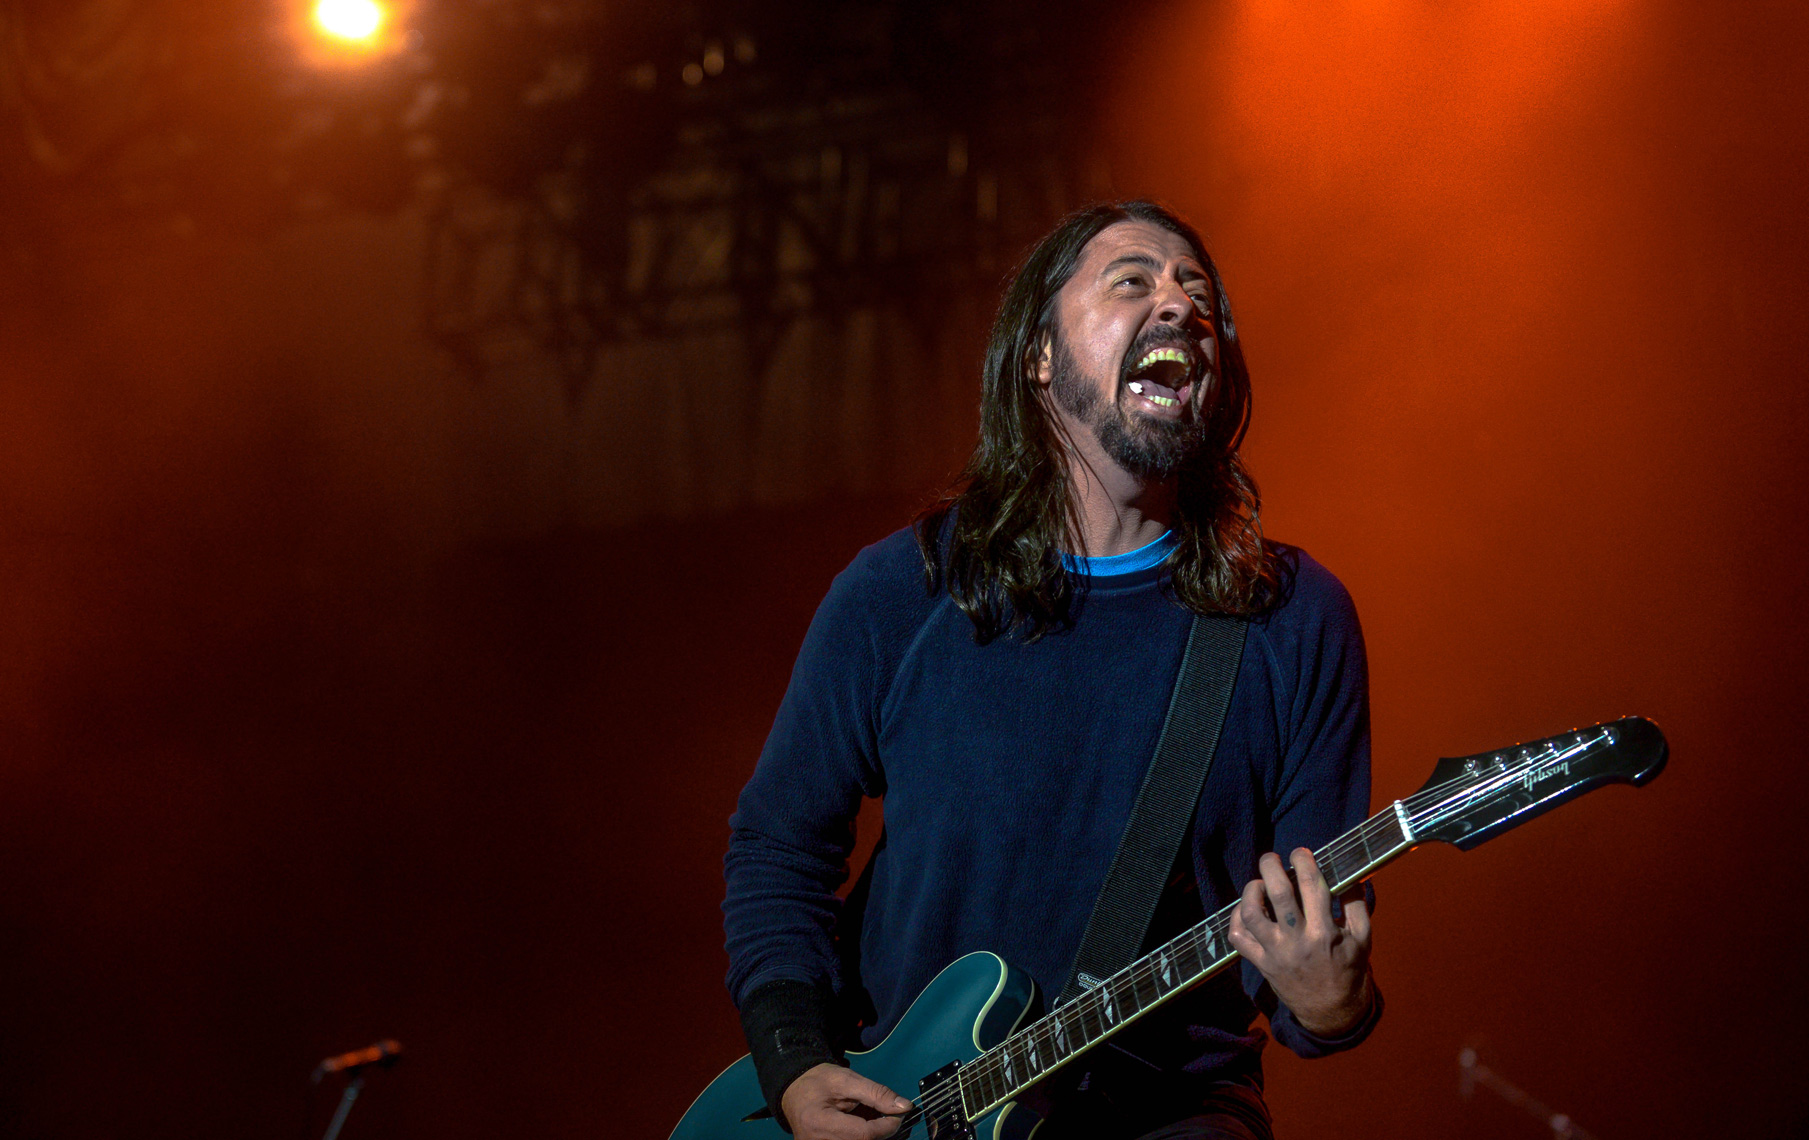 01_PhotoFolio_FooFighters_02_VoodooFest_2014_JF_DSC_6116-2